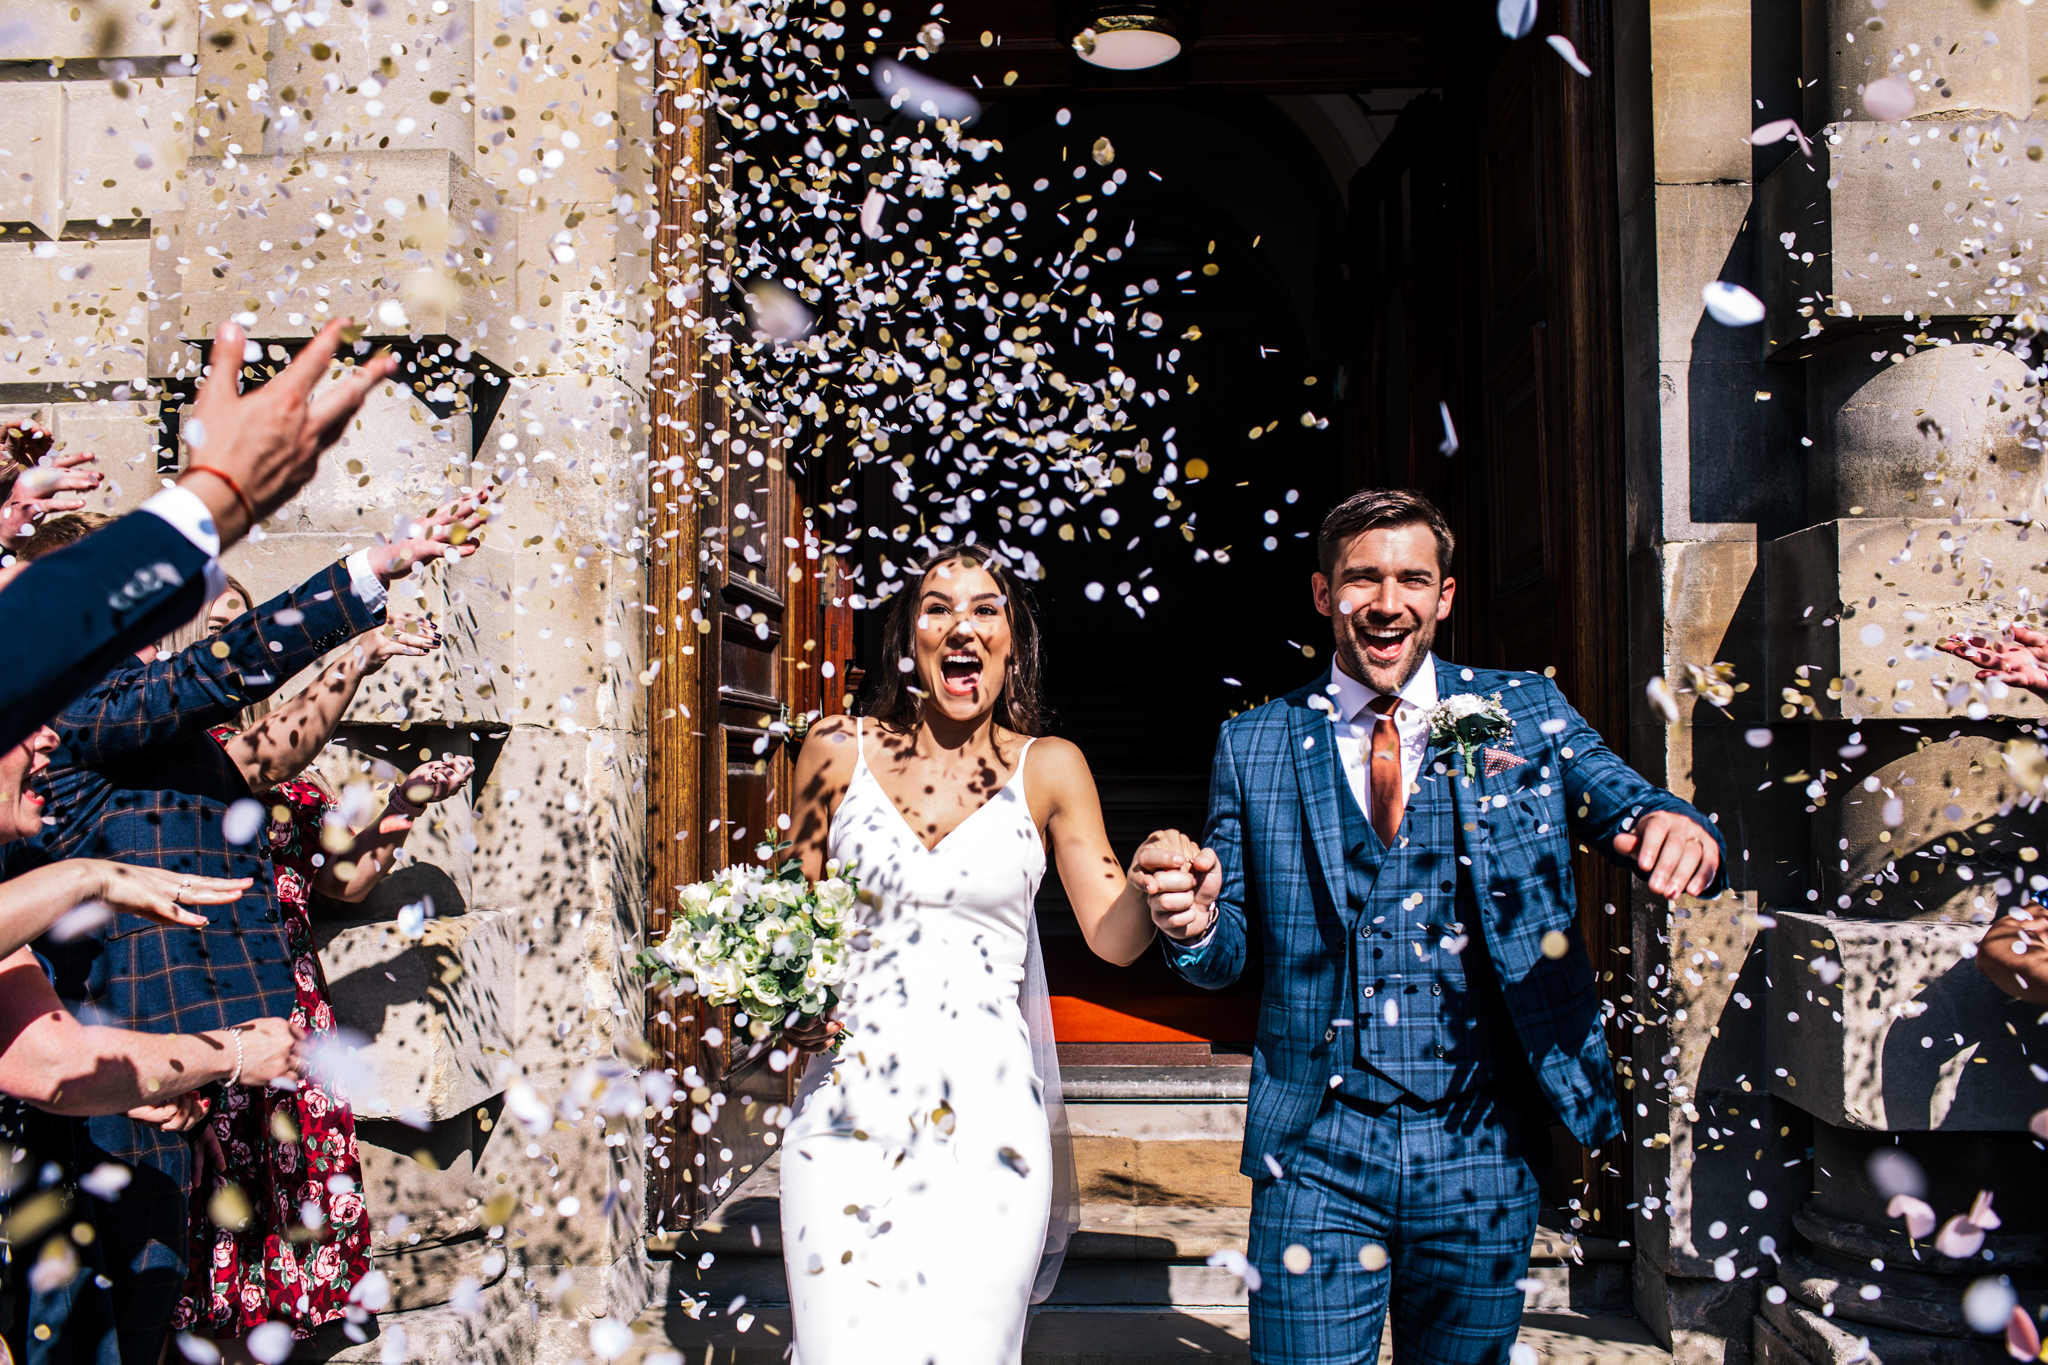 bath guildhall fun couple laughing as loads of confetti is thrown over